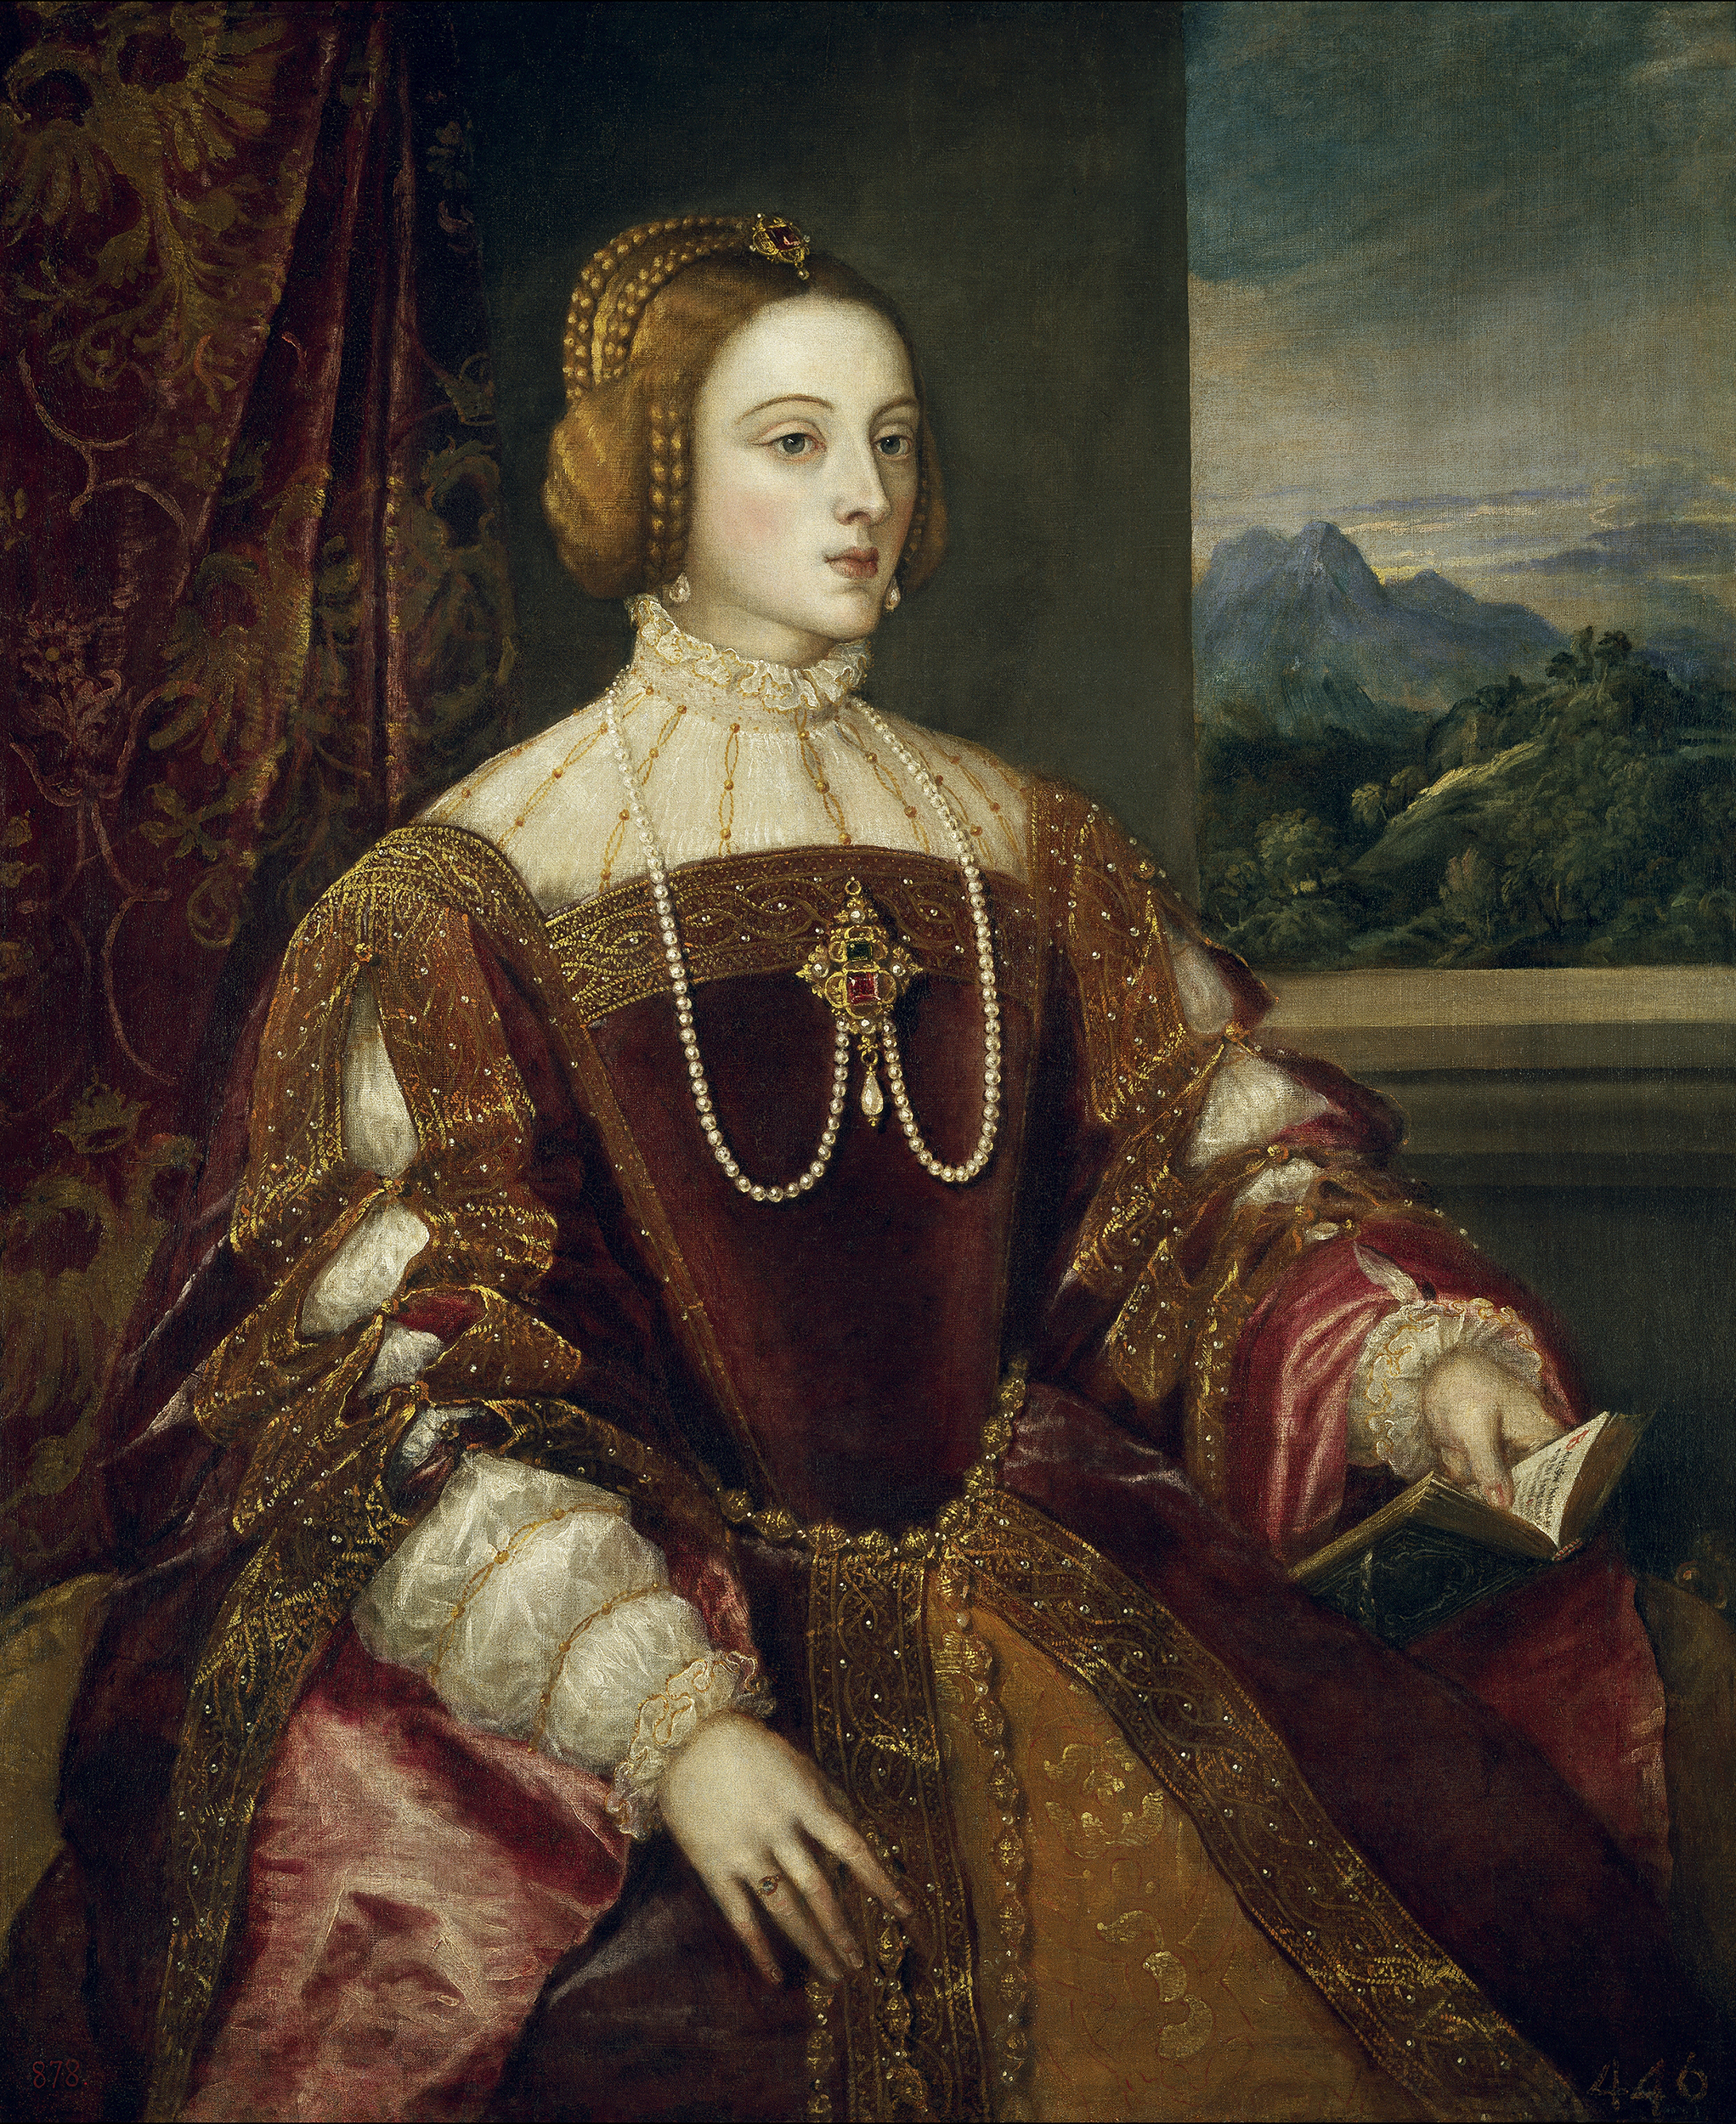 Portrait of Isabella of Portugal (1503-1539), Queen consort of Spain, Holy Roman Empress (1526-1539) | Portraits of Kings